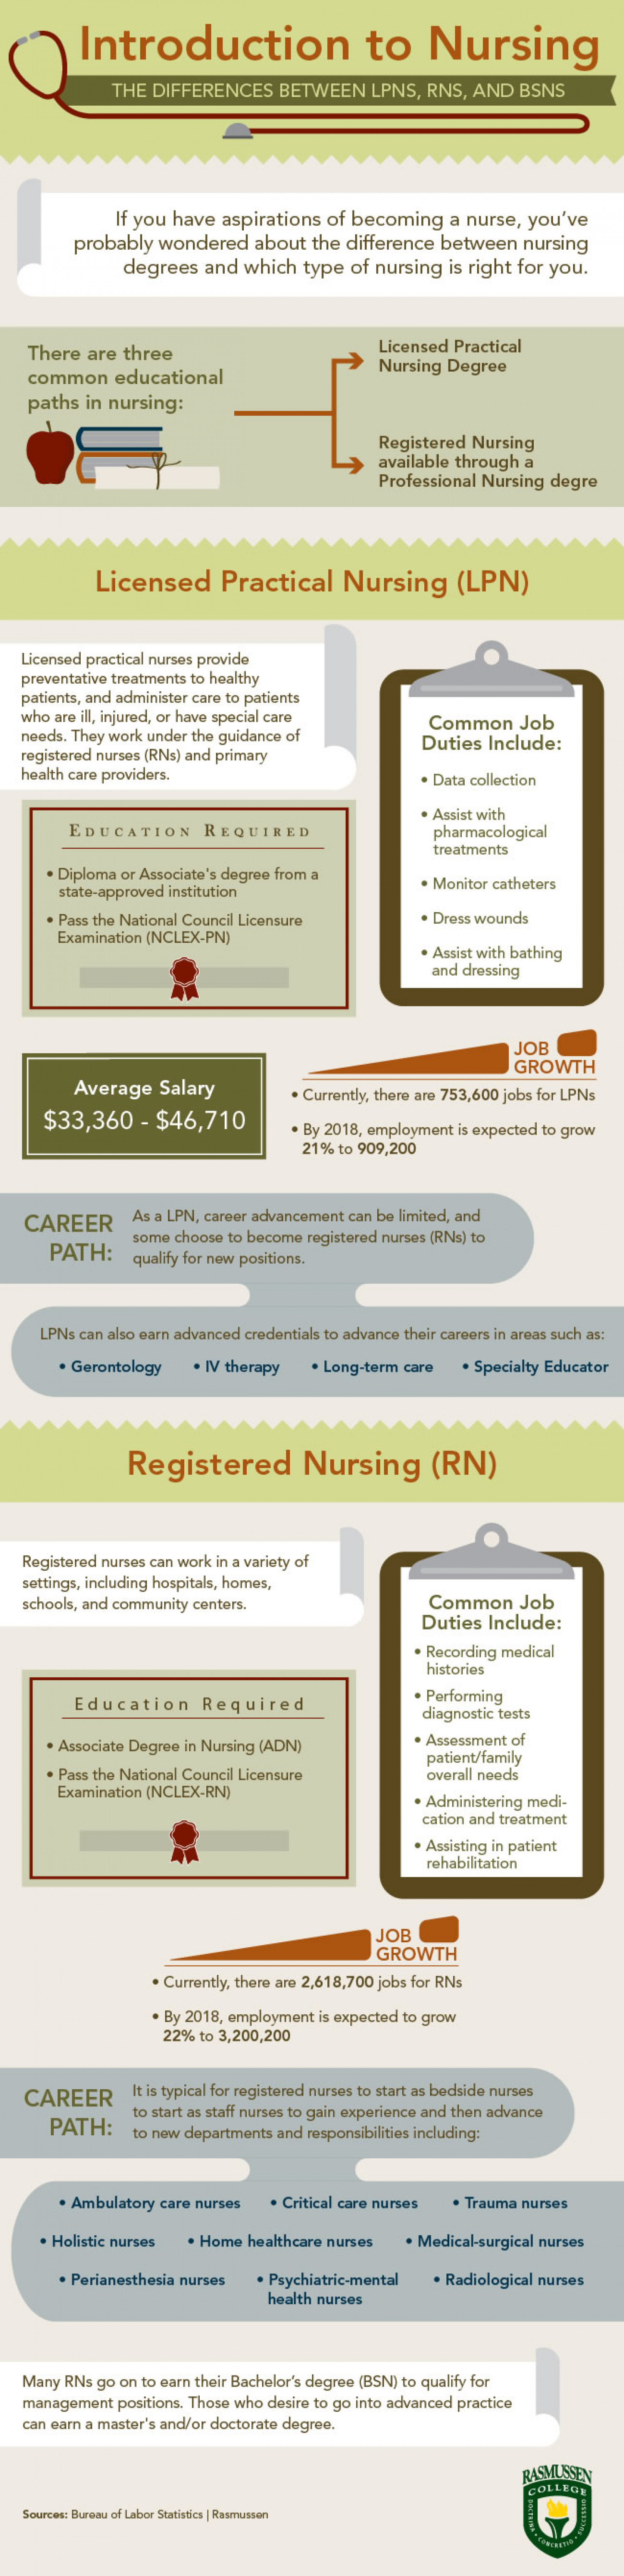 Introduction to Nursing Roles and Trajectories Infographic